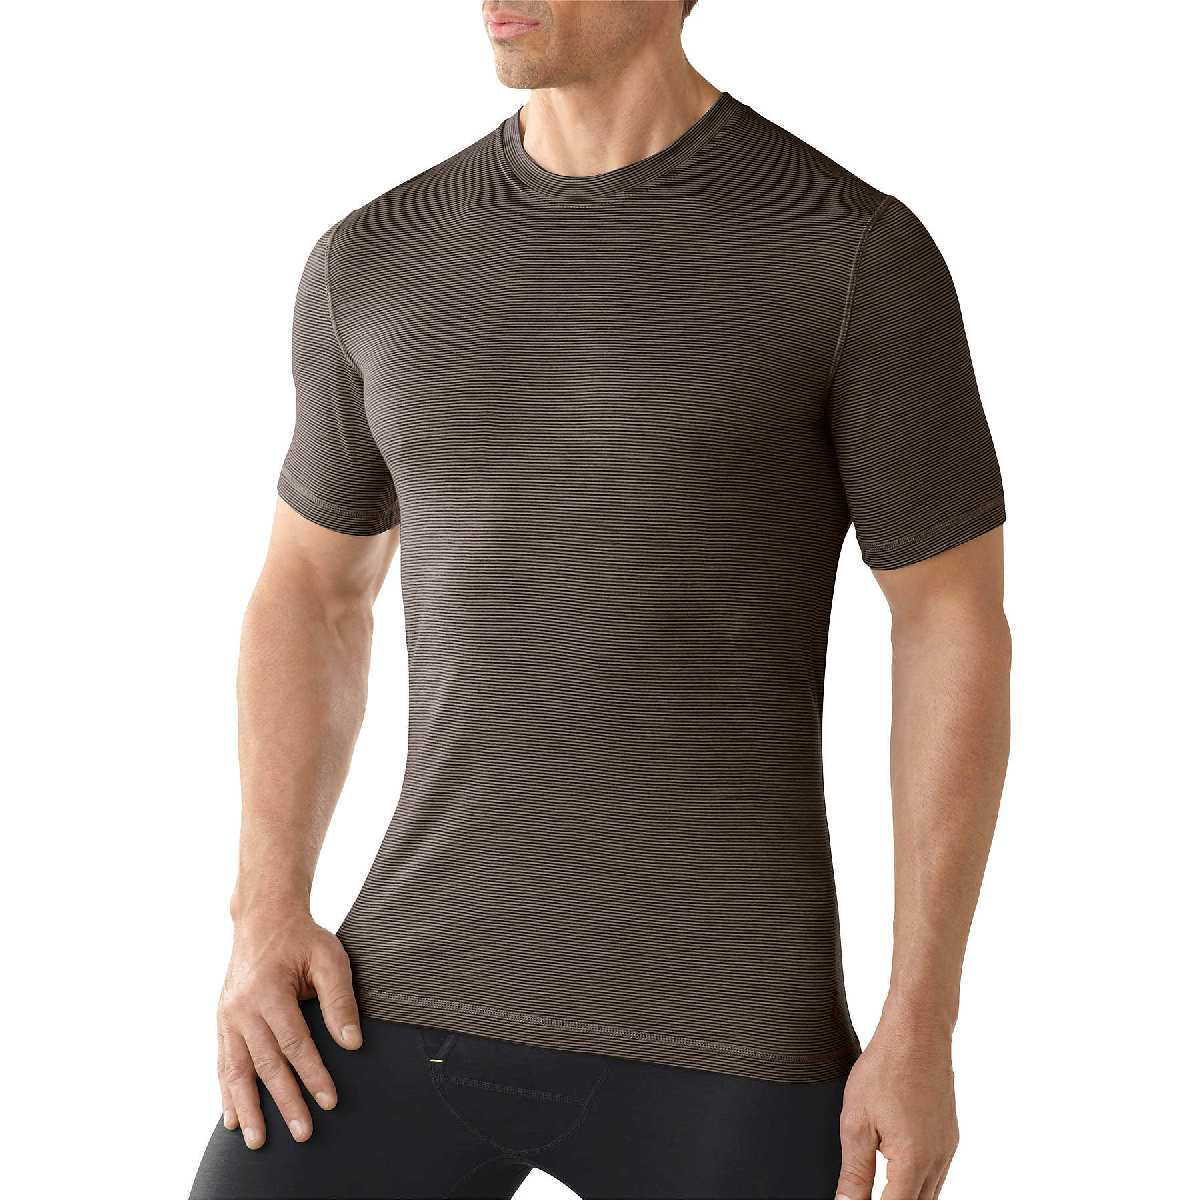 SmartWool NTS Micro 150 Pattern Short Sleeve Base Layer Men's Size M Taupe U.S.A. & Canada